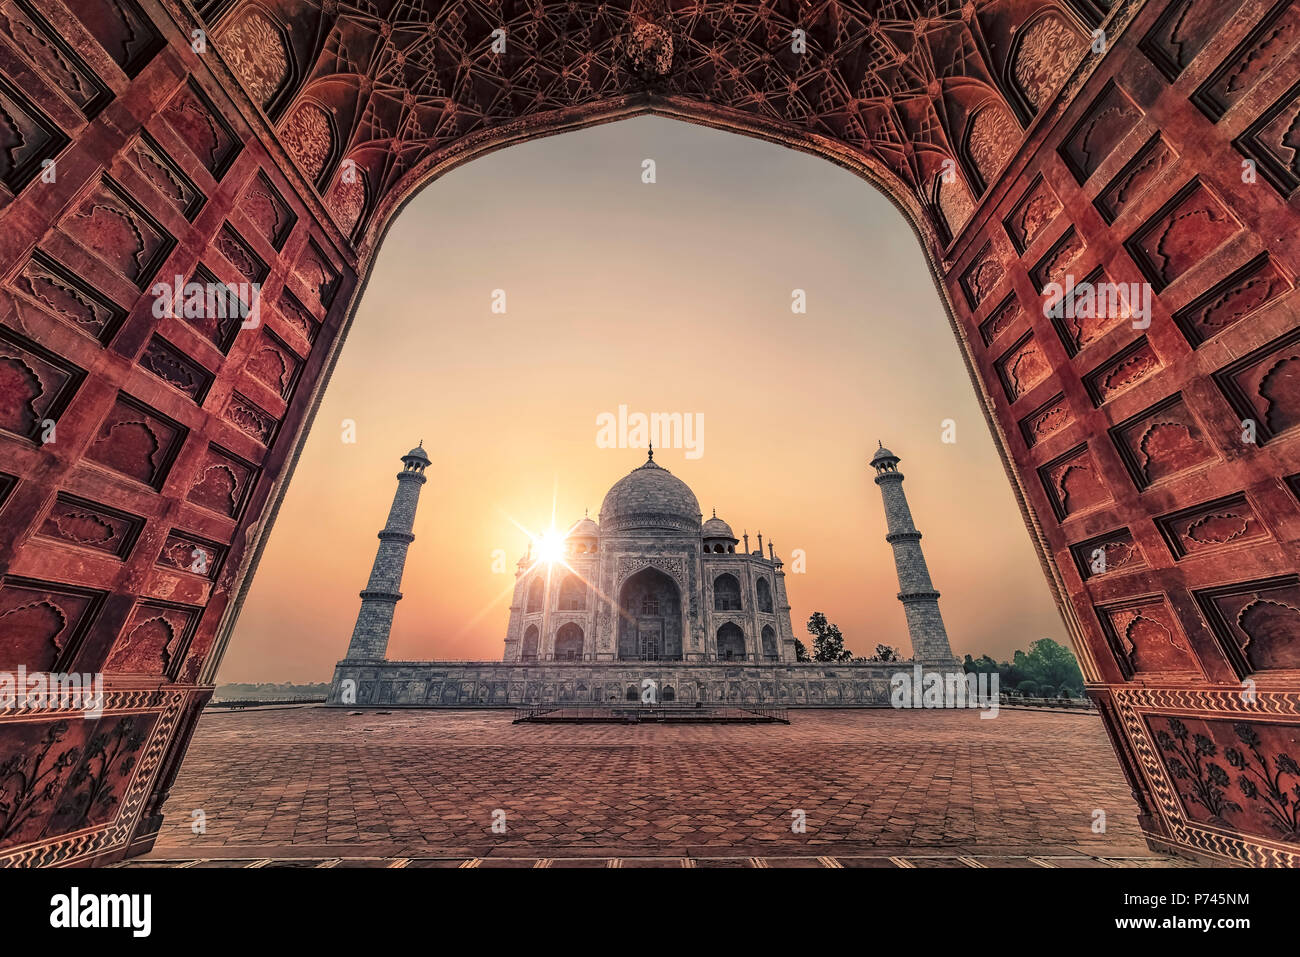 Taj Mahal in sunrise light, Agra, India - Stock Image